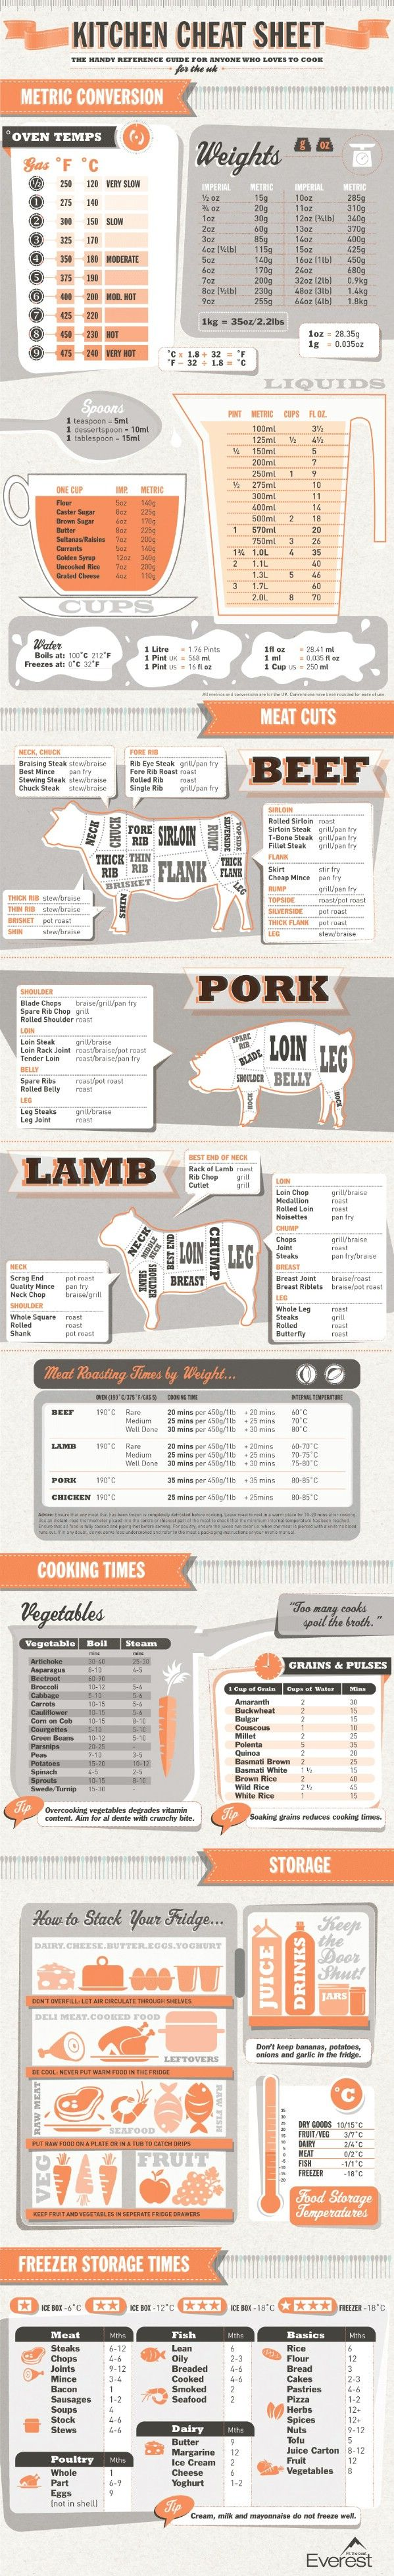 Everything Sheet - 18 Professional Kitchen Infographics to Make Cooking Easier and Faster